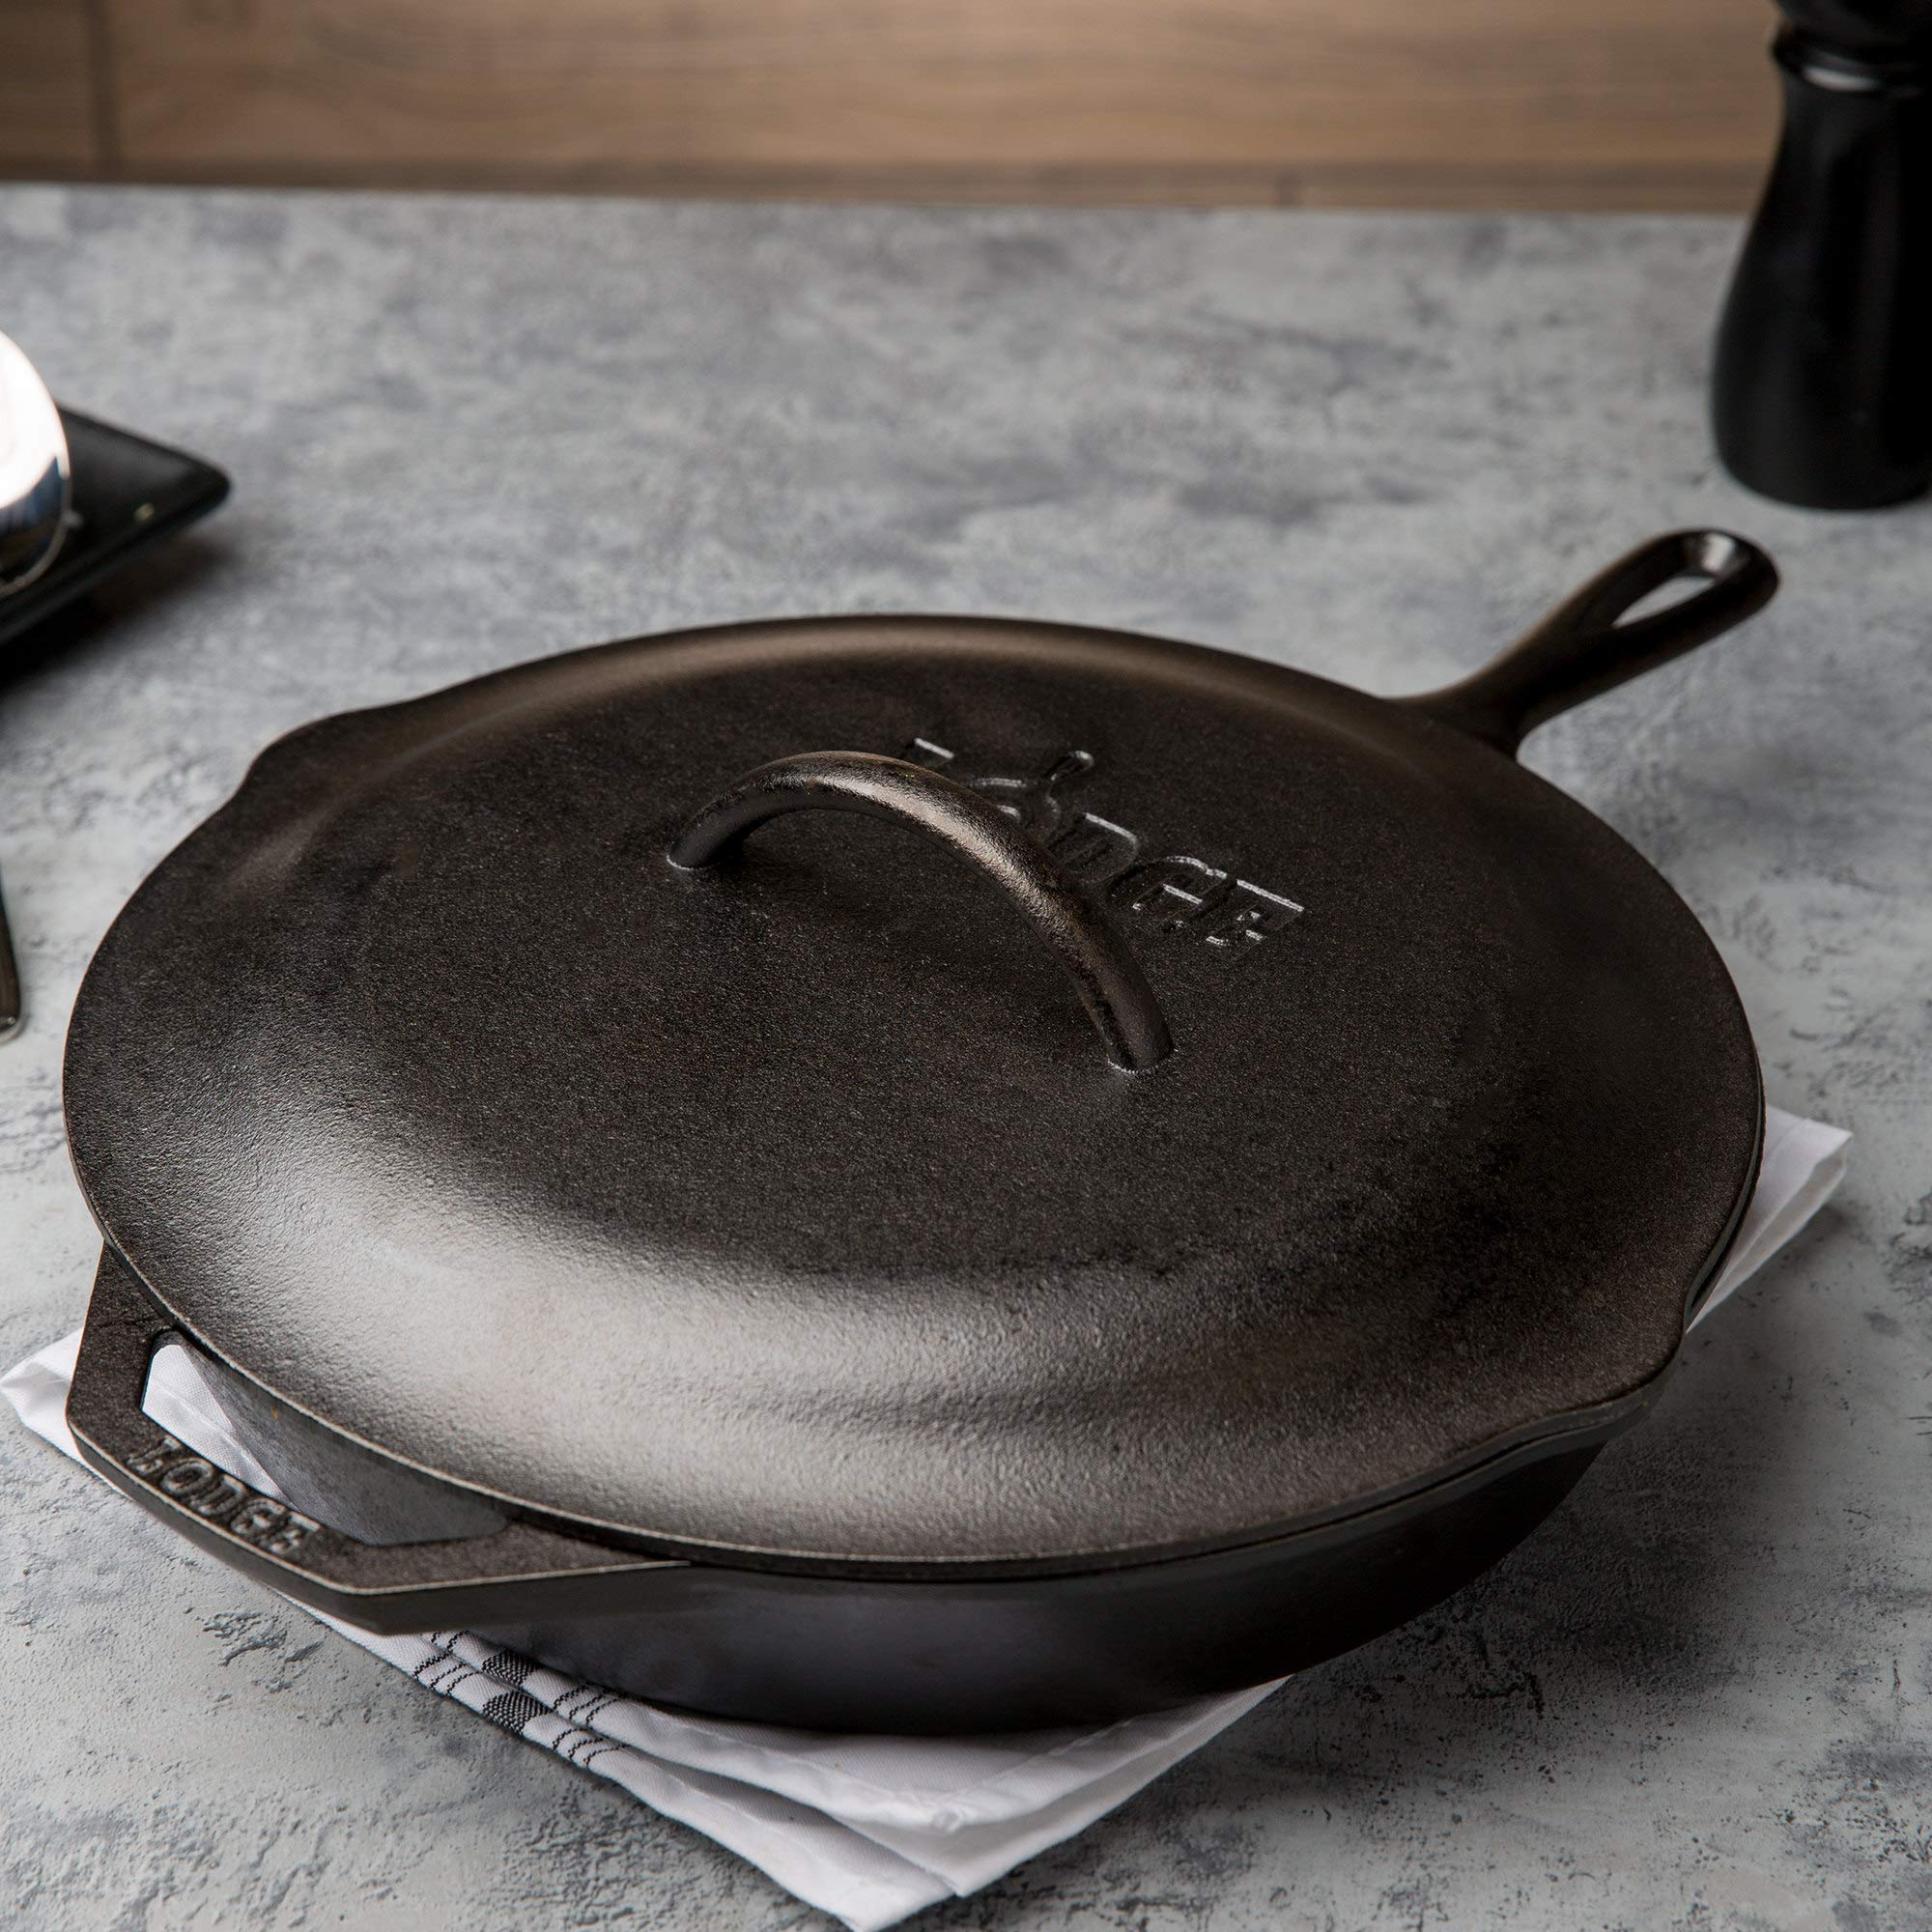 Lodge Seasoned Cast Iron Skillet - 12 Inch Ergonomic Frying Pan with Assist Handle with Cast Iron Cover by Lodge (Image #3)